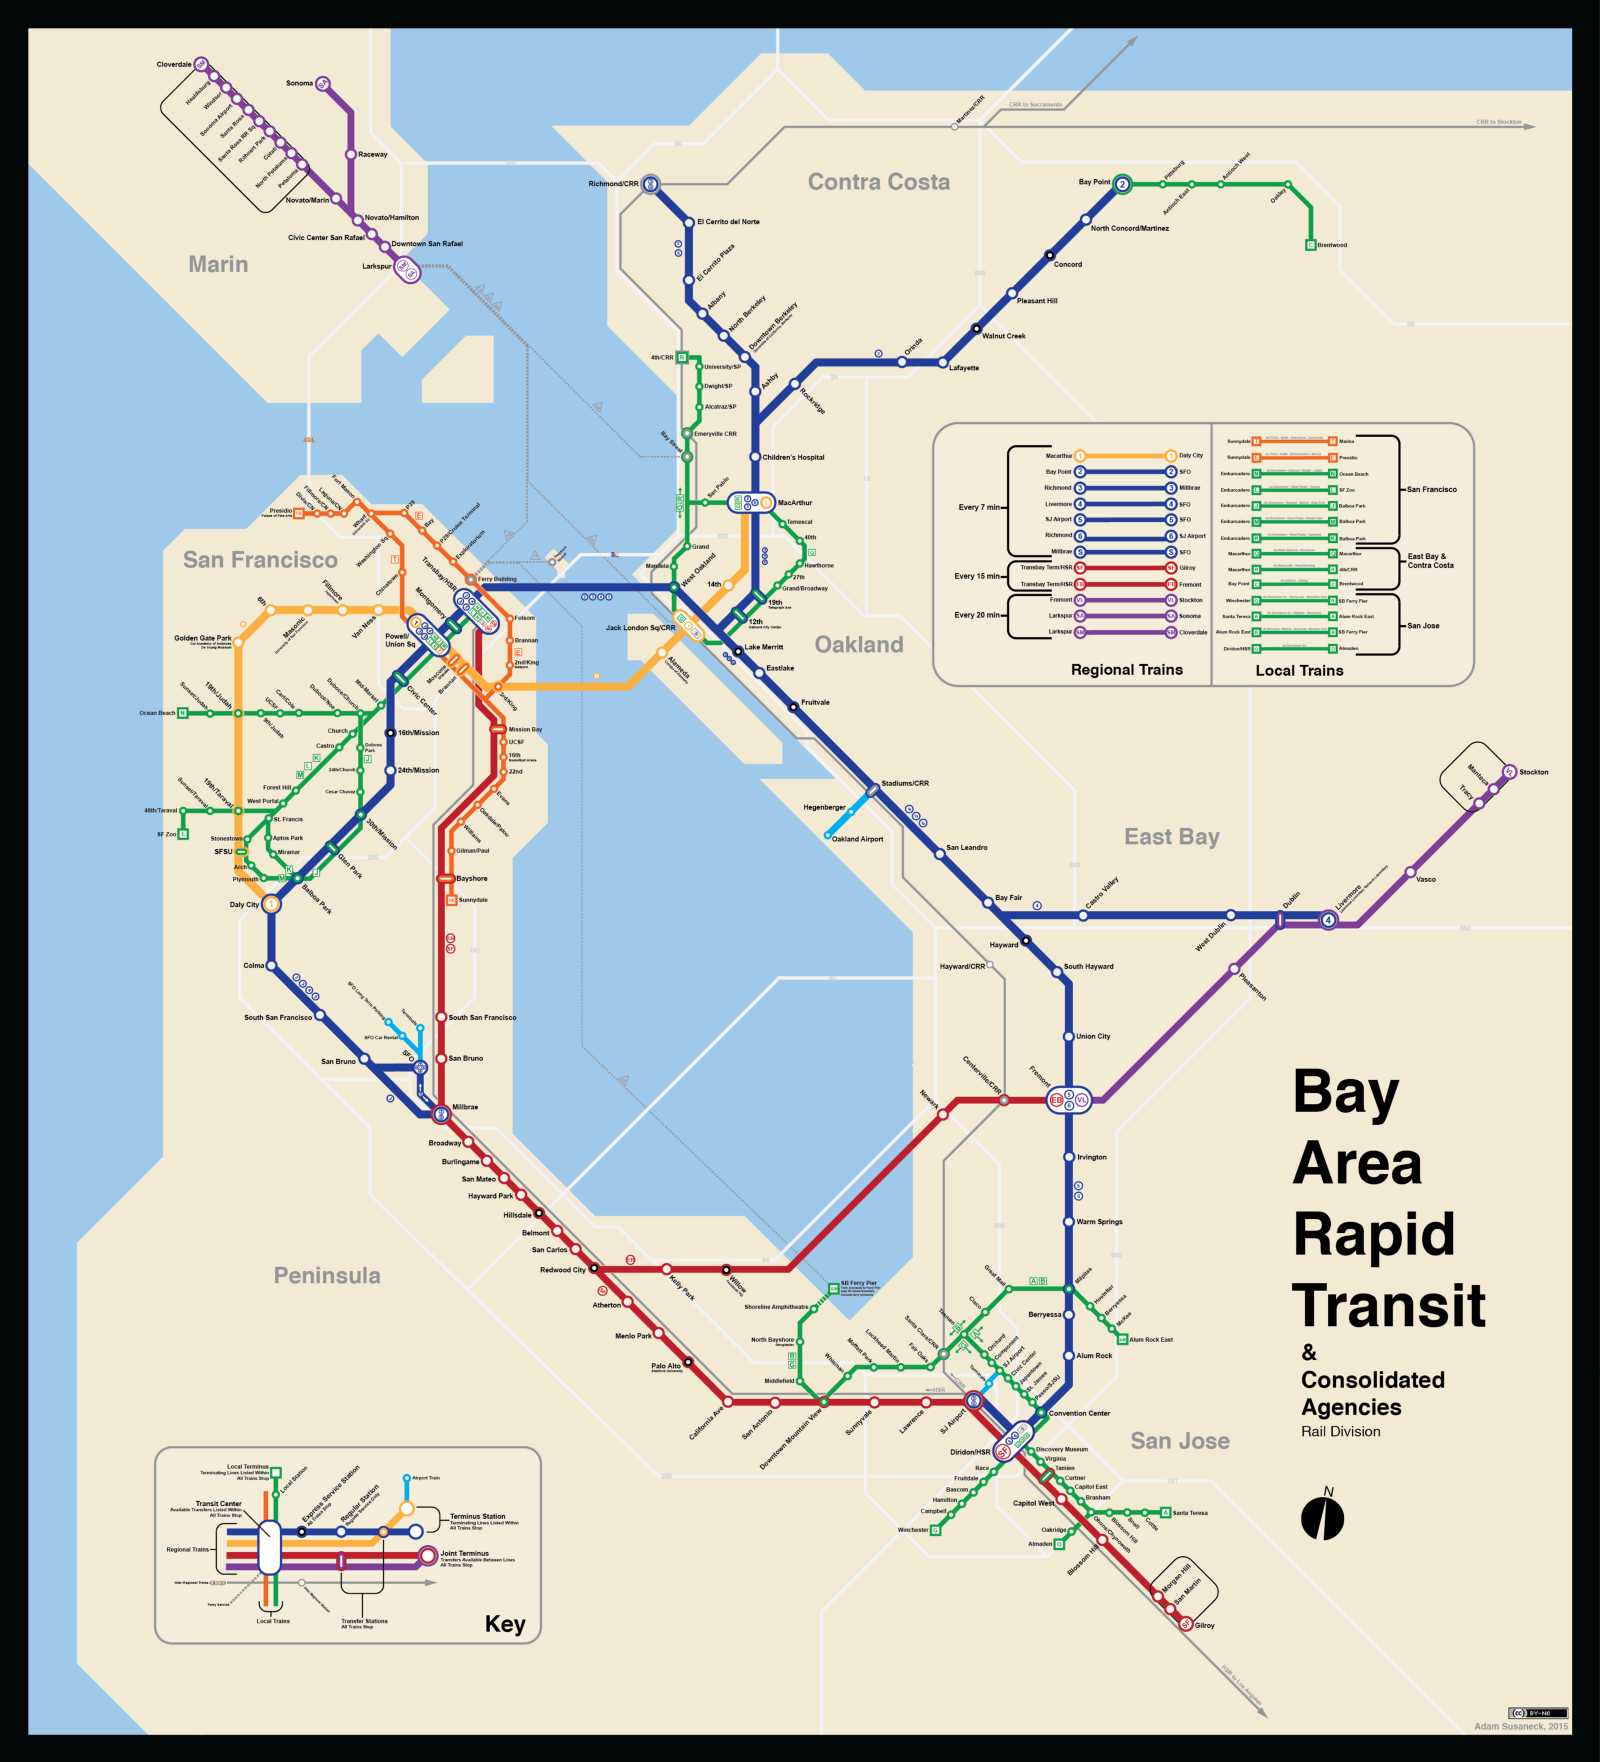 Bay Area Train Map : Unlike some operators elsewhere, no single agency in the bay area is so omnipresent that its map can effectively function as a regional rail map, at least (if not a regional.